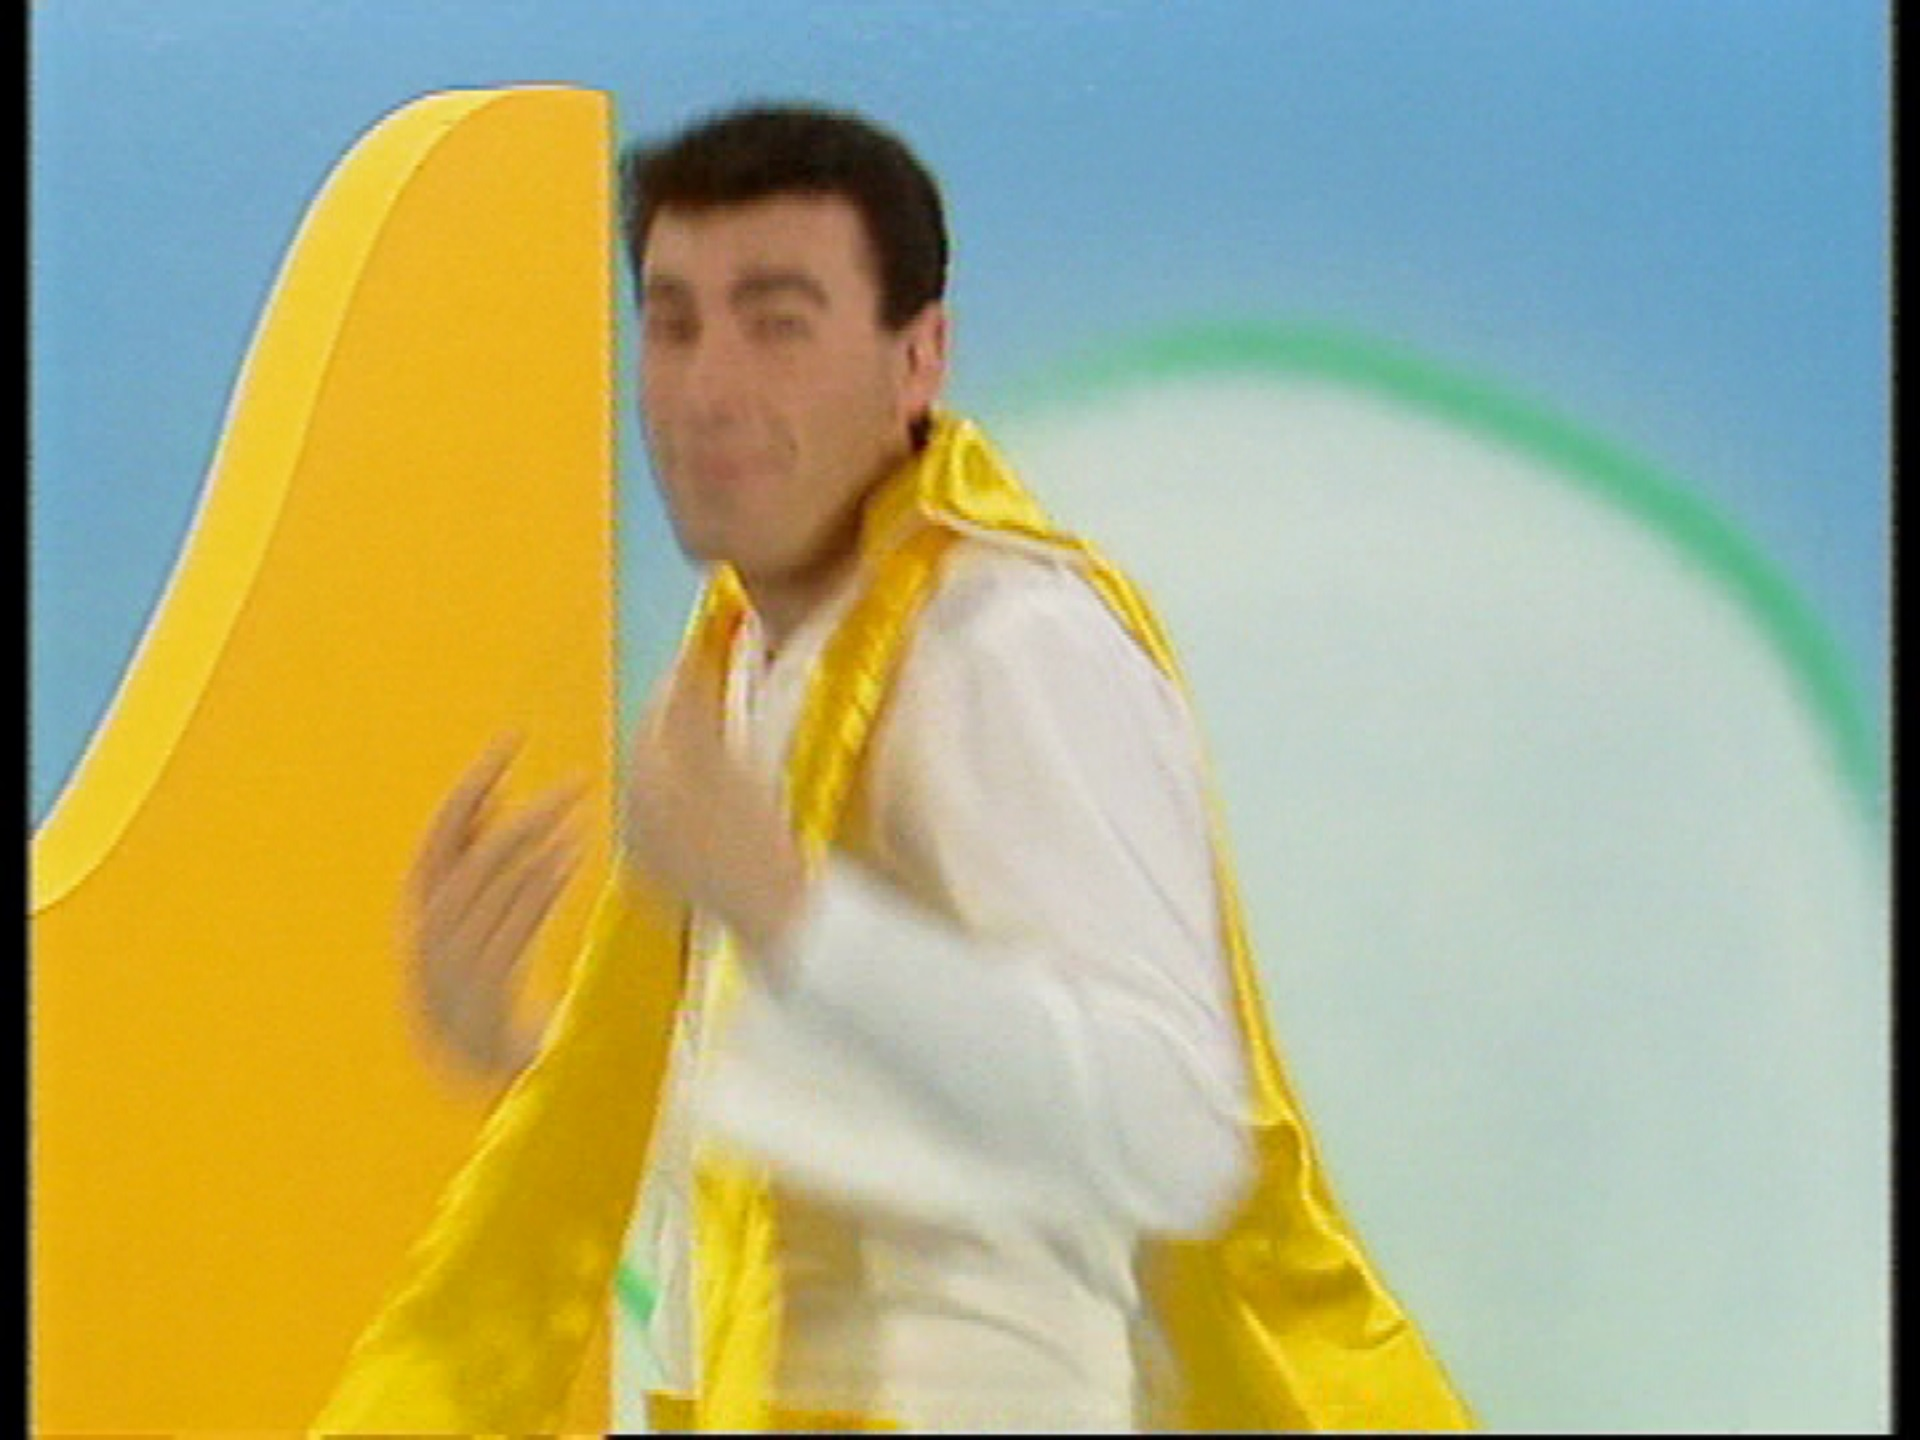 The Wiggles' Elvis Styled Clothing